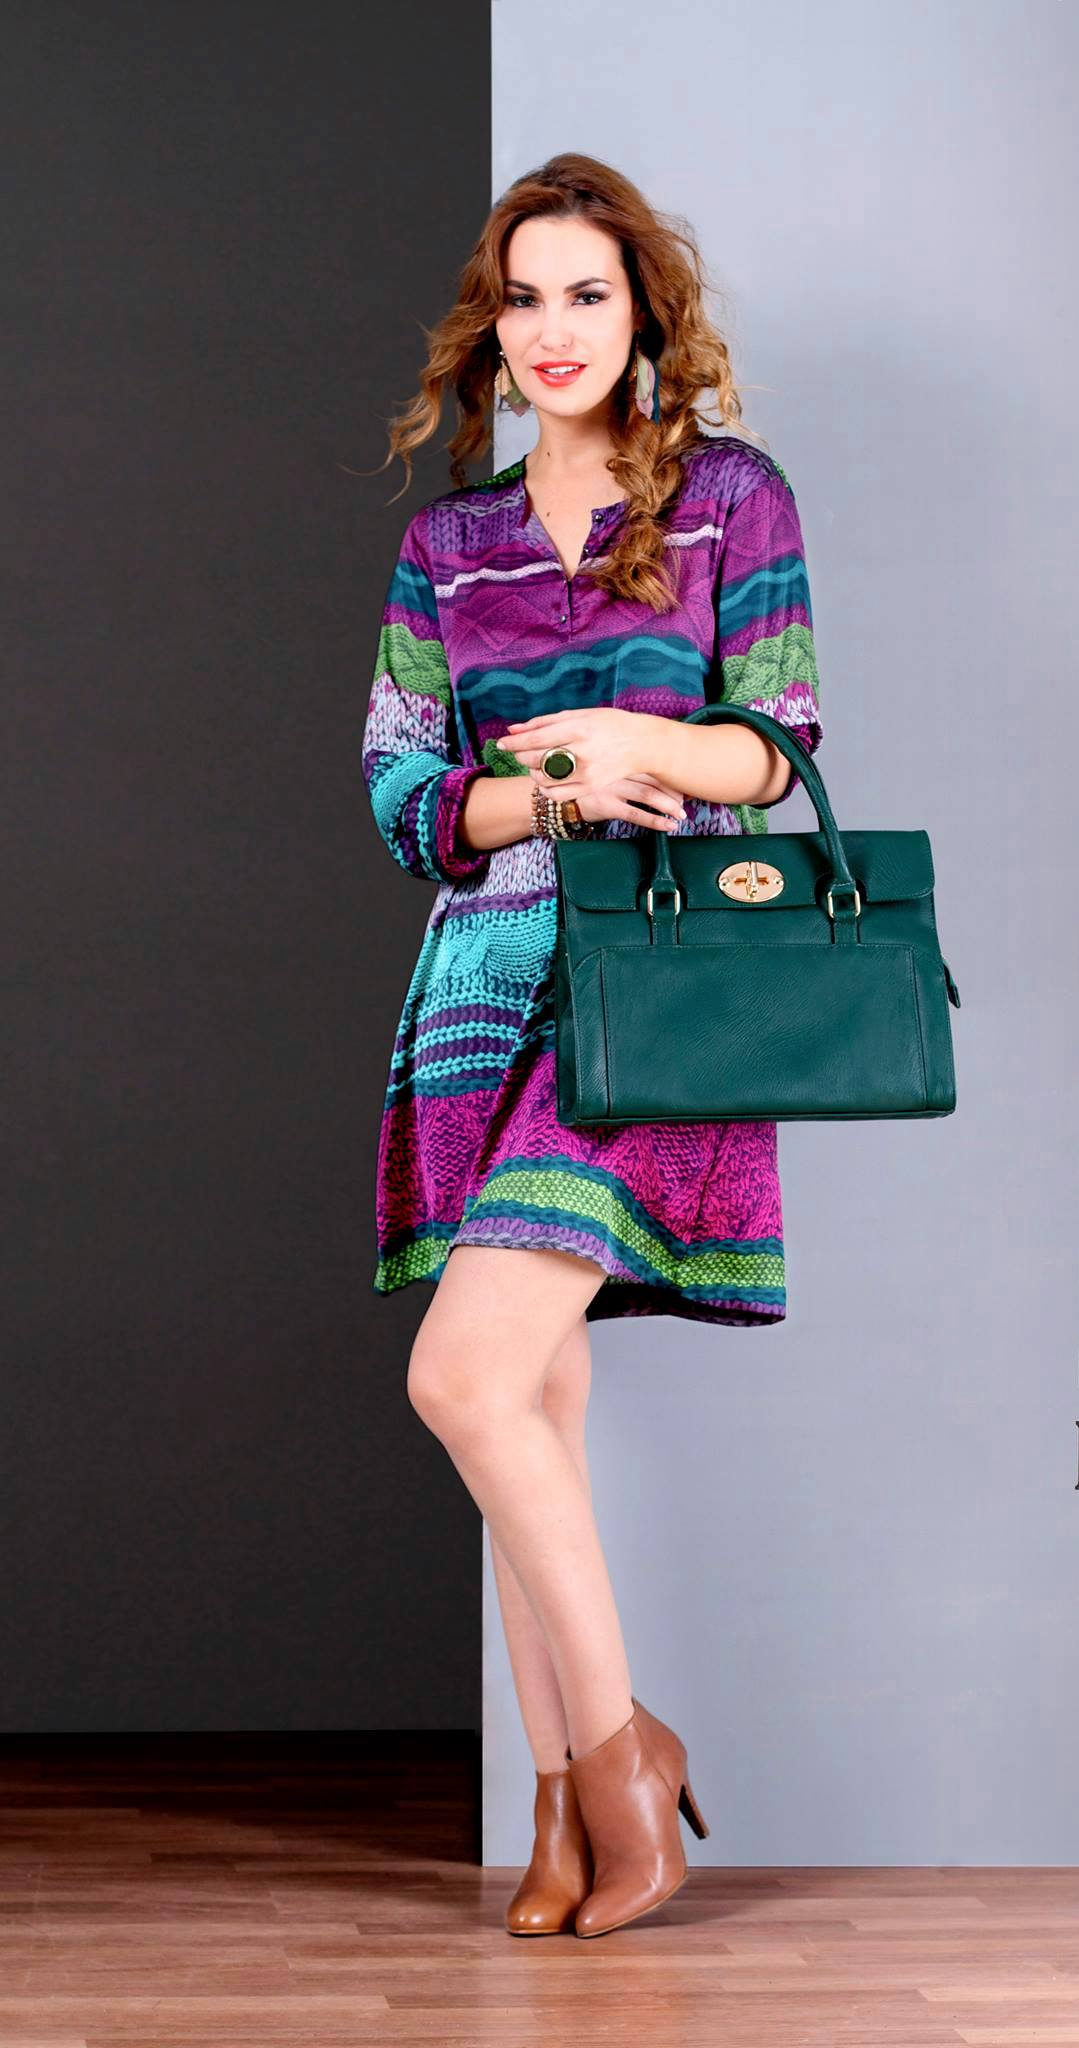 Une Robe/Tunique à joli imprimé tricot bien joliment coloré associée à des bottines couleur camel et un grand sac à fermoir doré en similicuir couleur bleu canard, le tout au service d'un look purement SEVENTIES. Tunique : 78.900 DT Sac : 94.900 DT Bottines : 139.900 DT